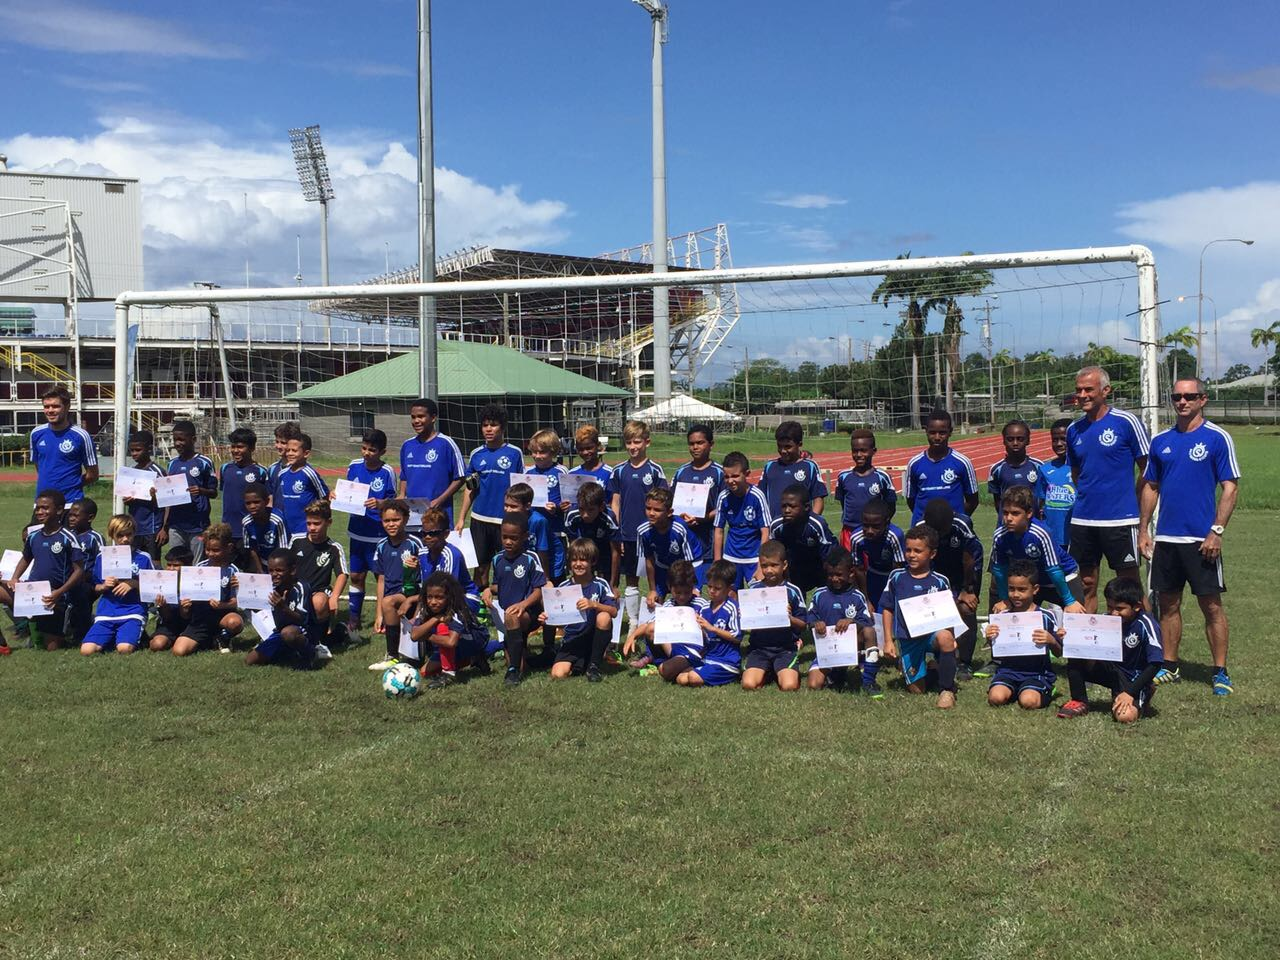 Winningskills Voetbalkamp Trinidad and Tobago